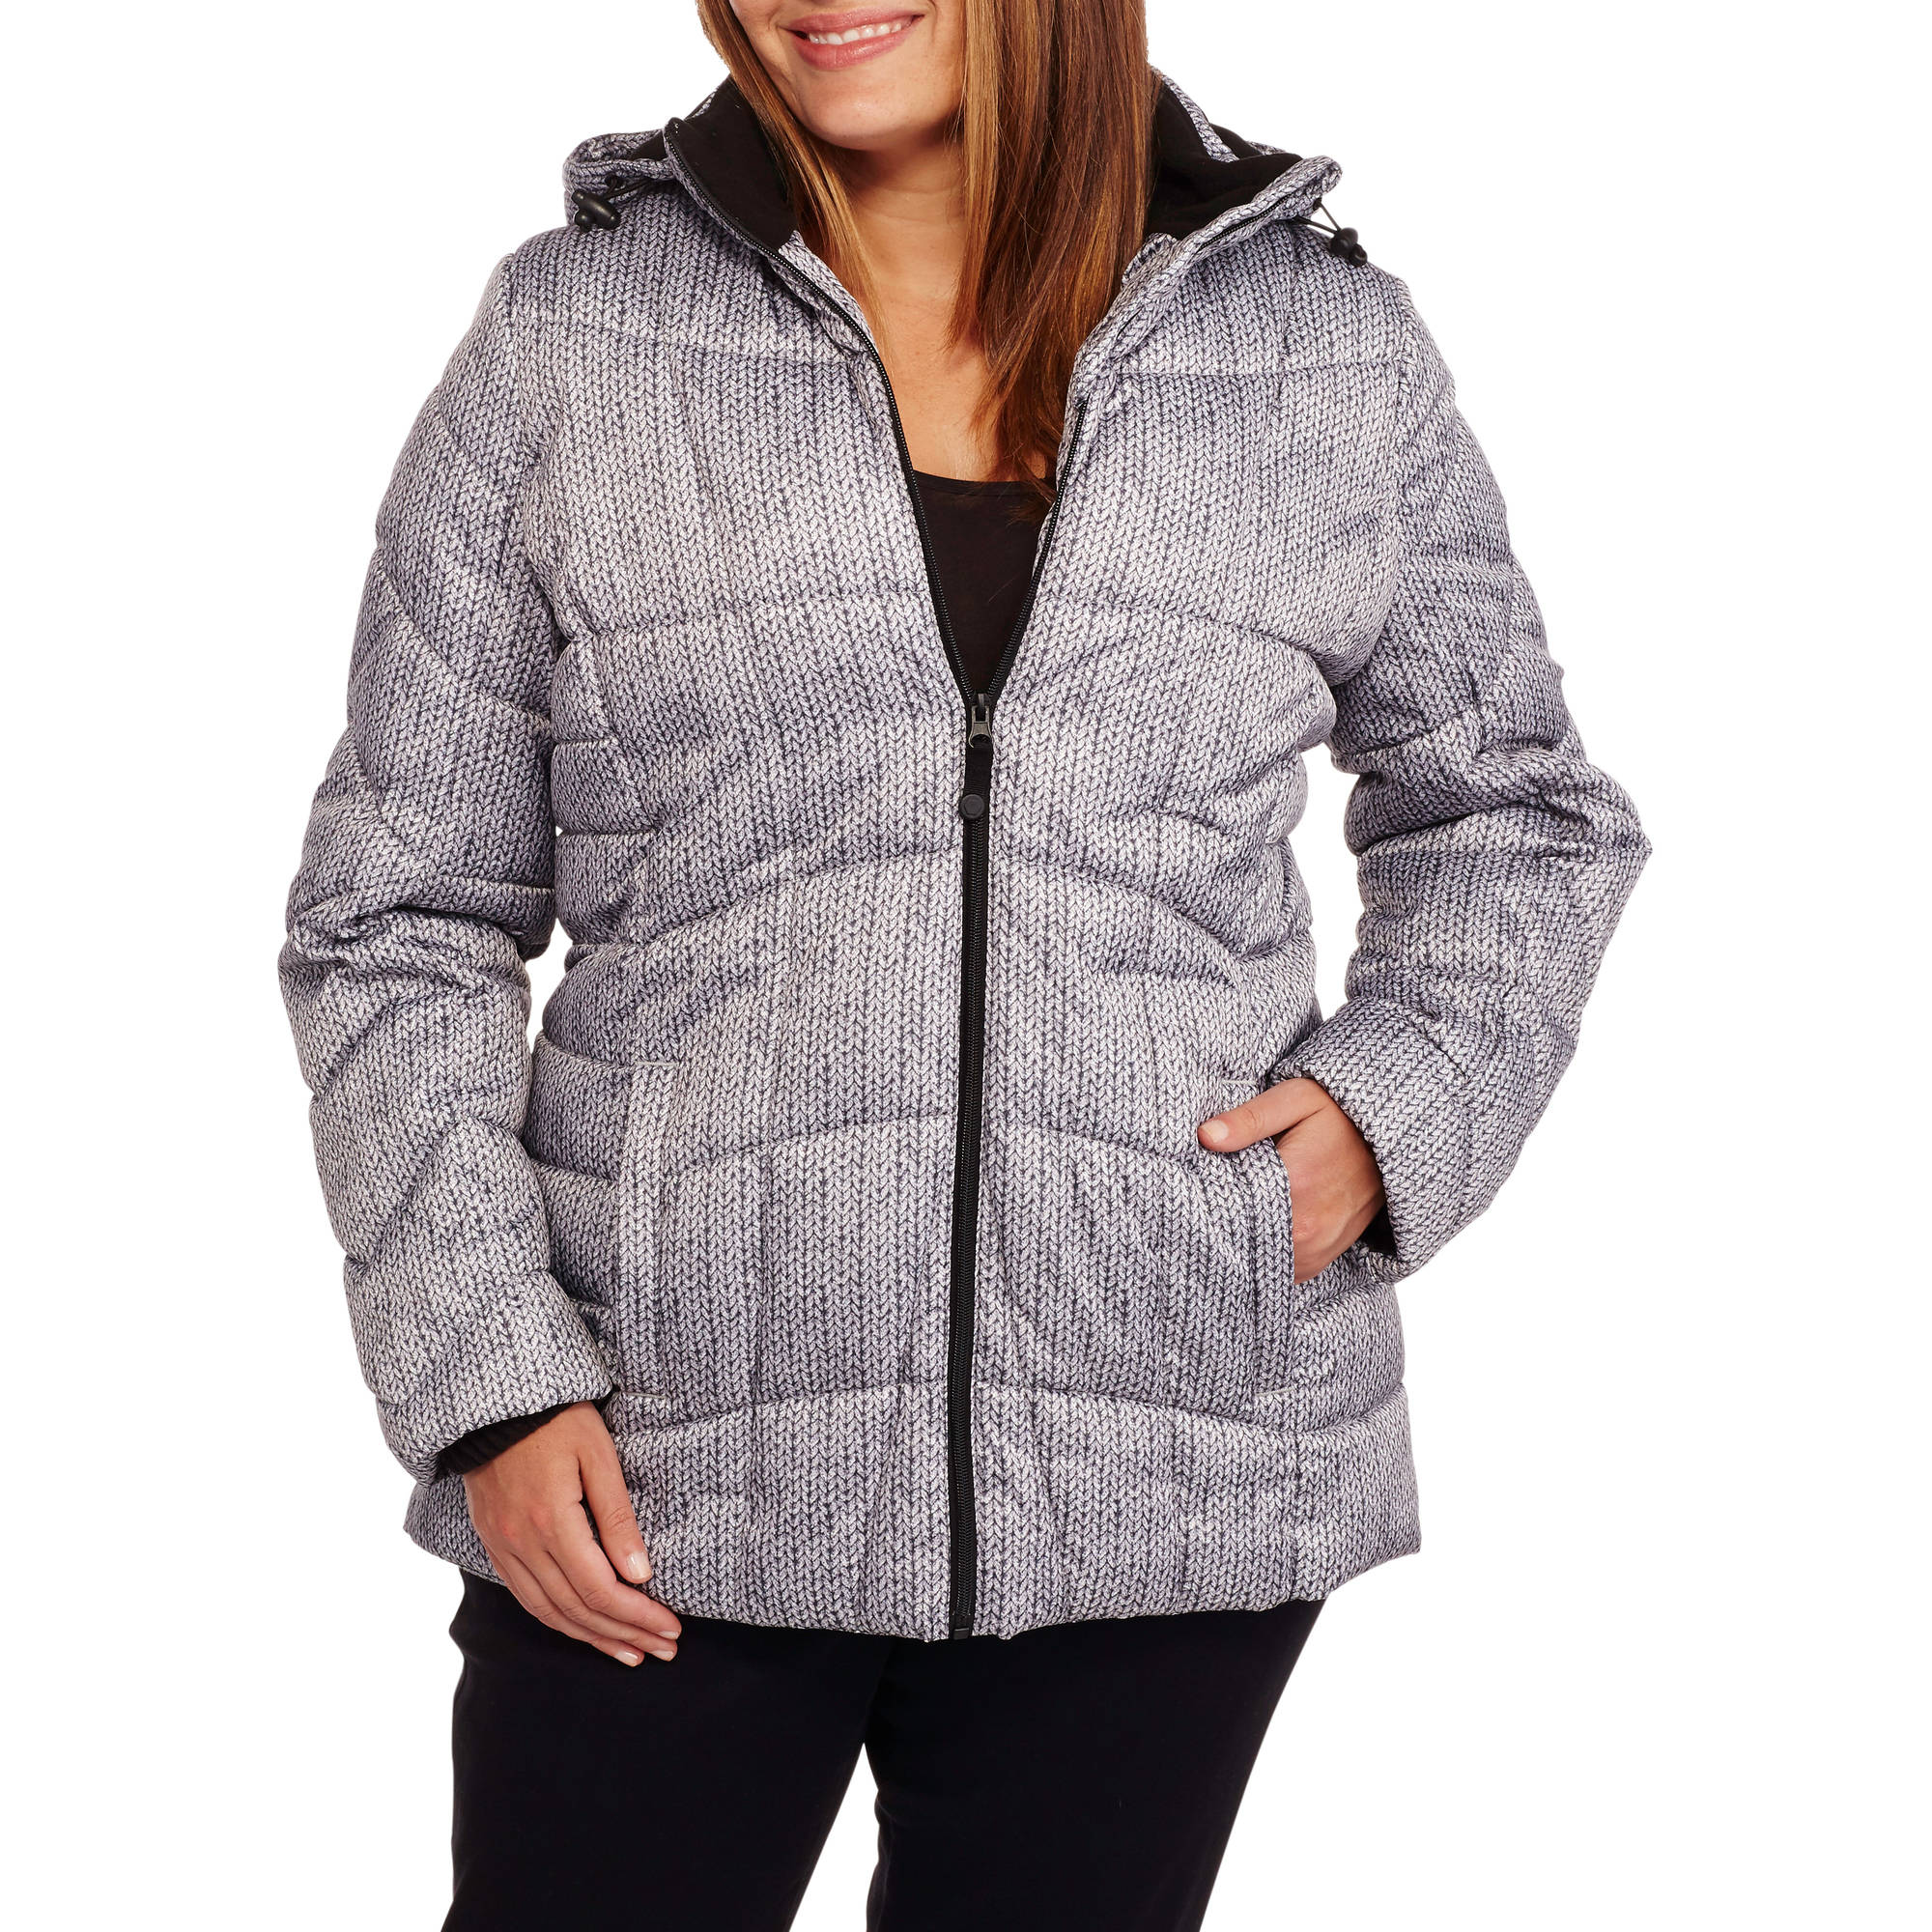 Faded Glory Women's Plus-Size Hooded Puffer Jacket Coat